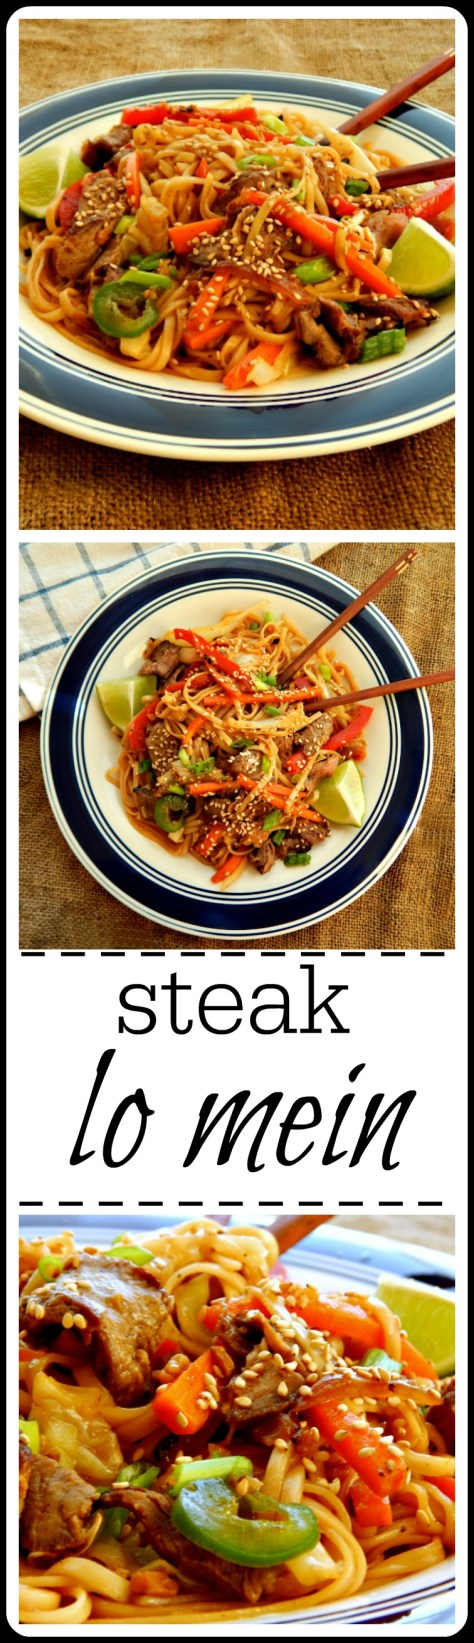 Steak lo Mein: this is made from leftover steak and has to be the BEST leftover steak recipe, ever!